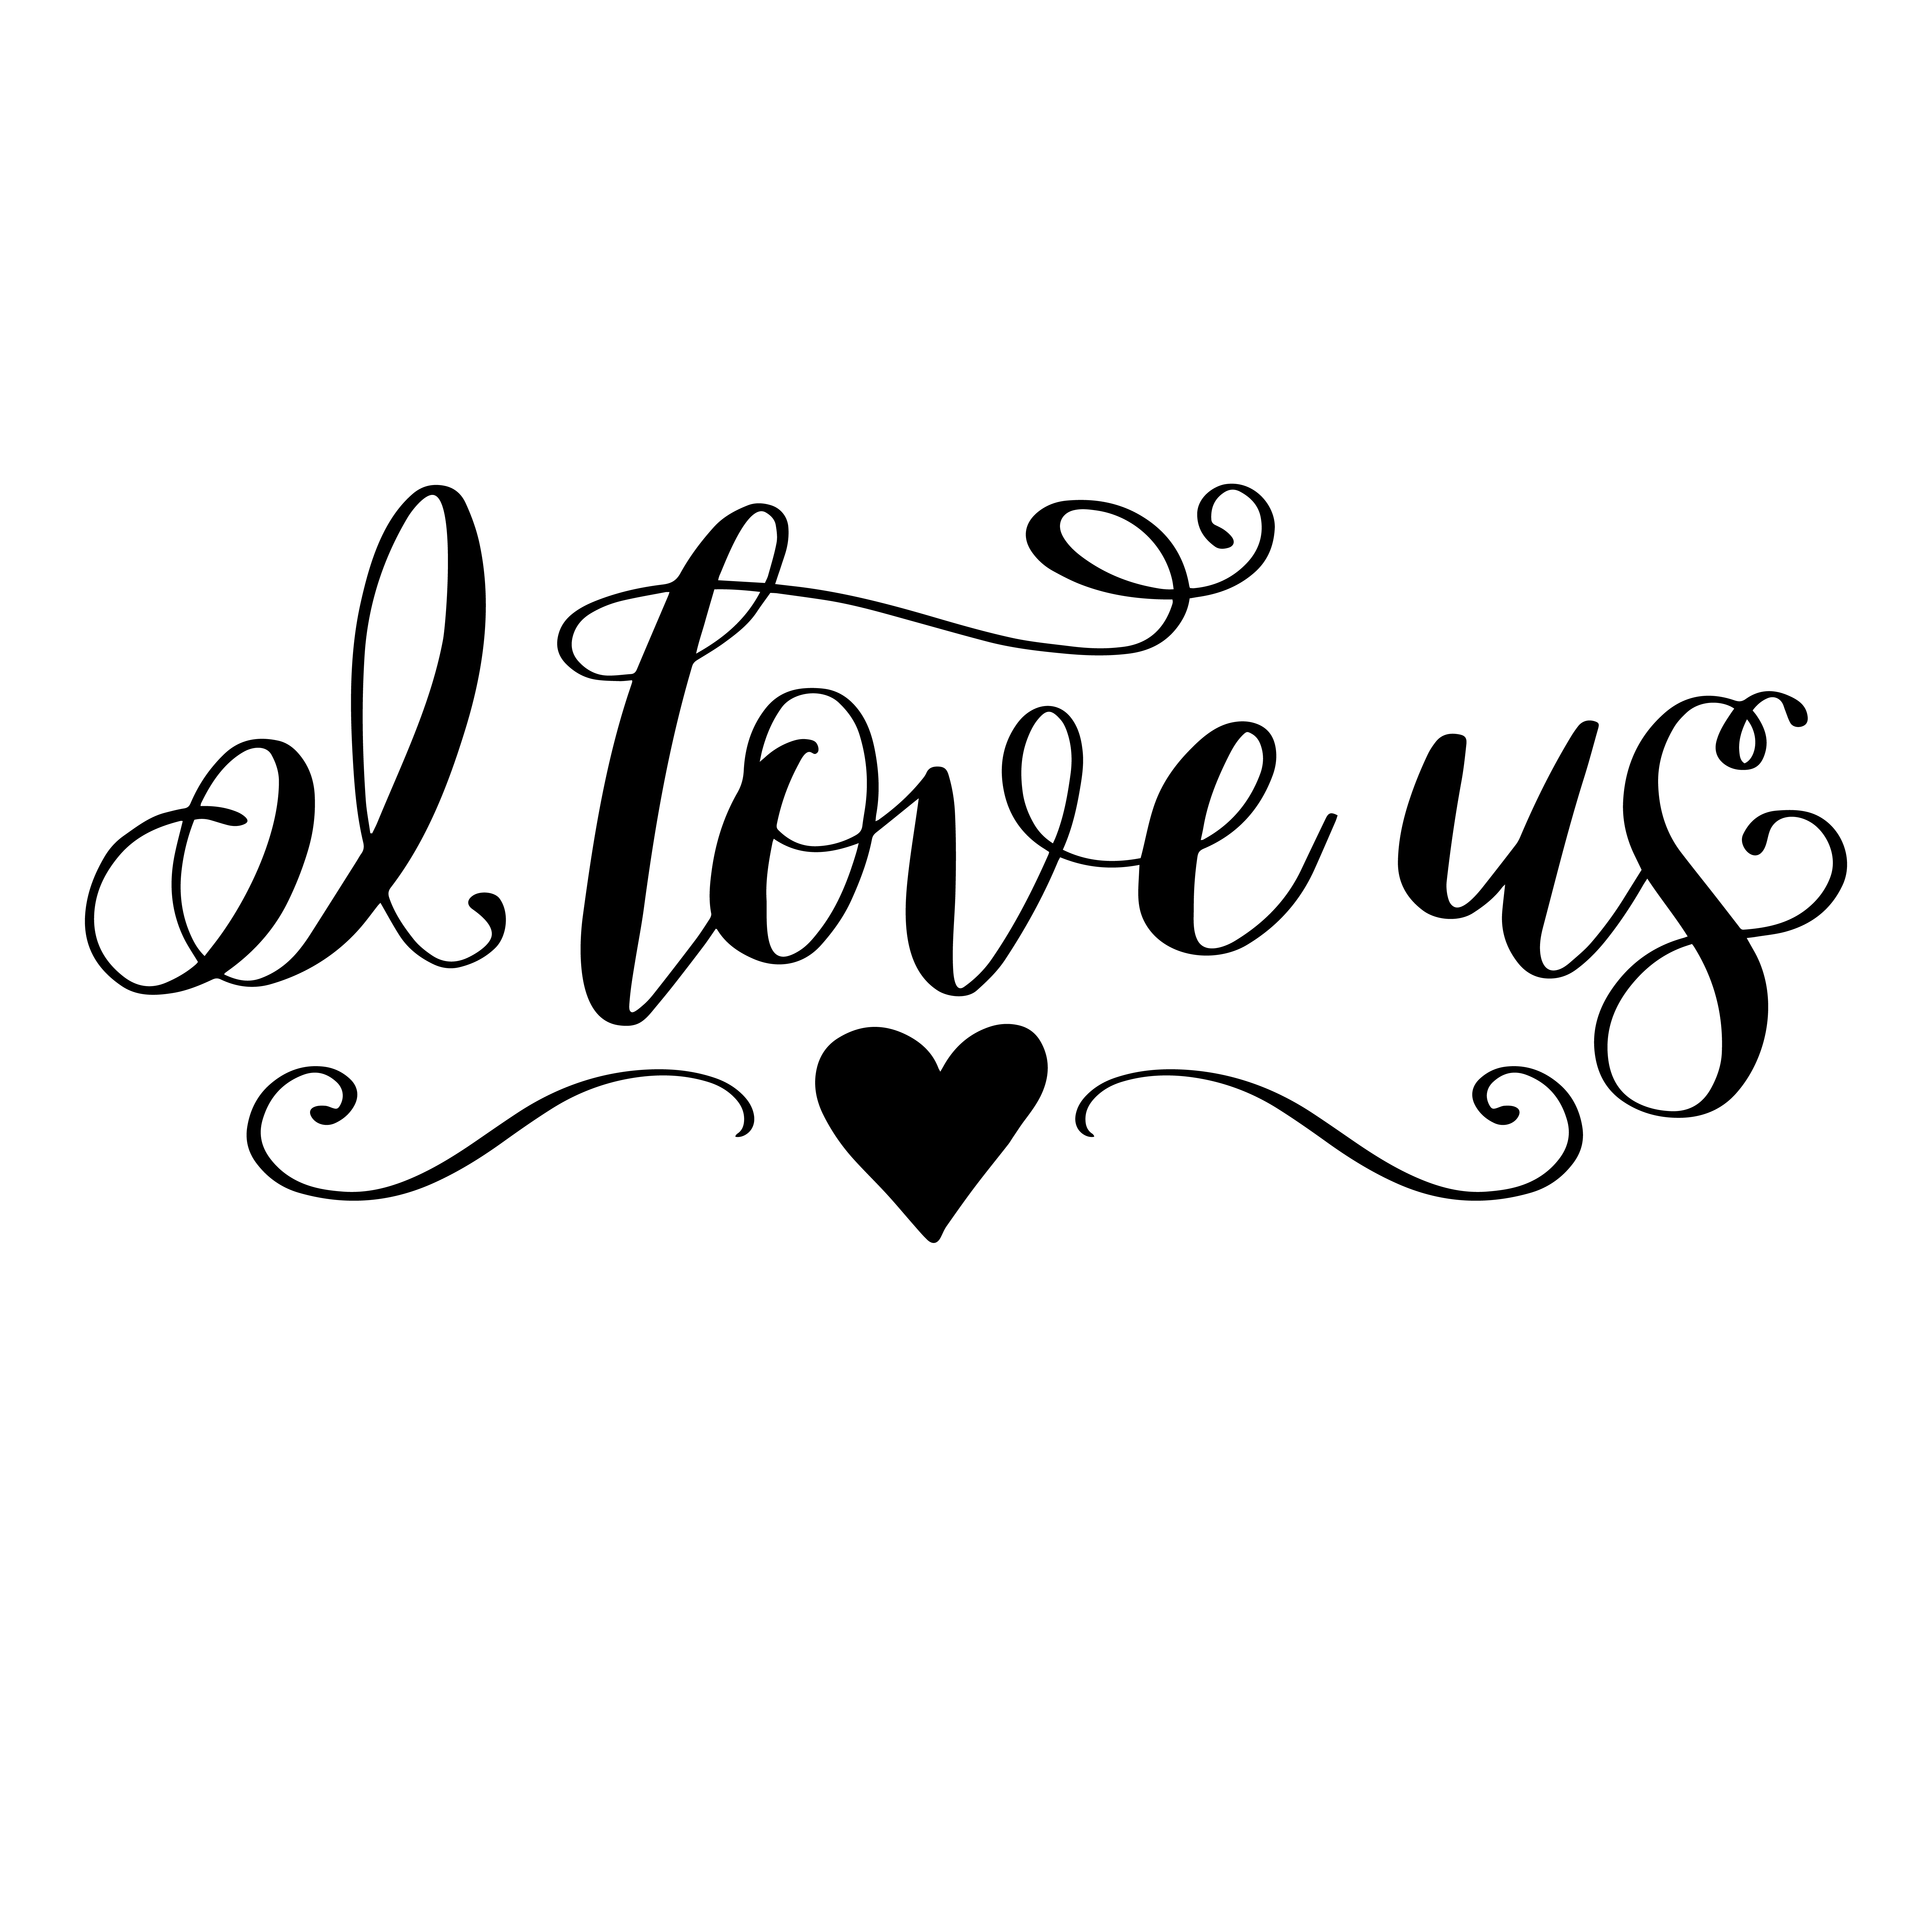 Sweet Baby Girl Wallpaper For Facebook Hand Lettered I Love Us Free Svg Cut File